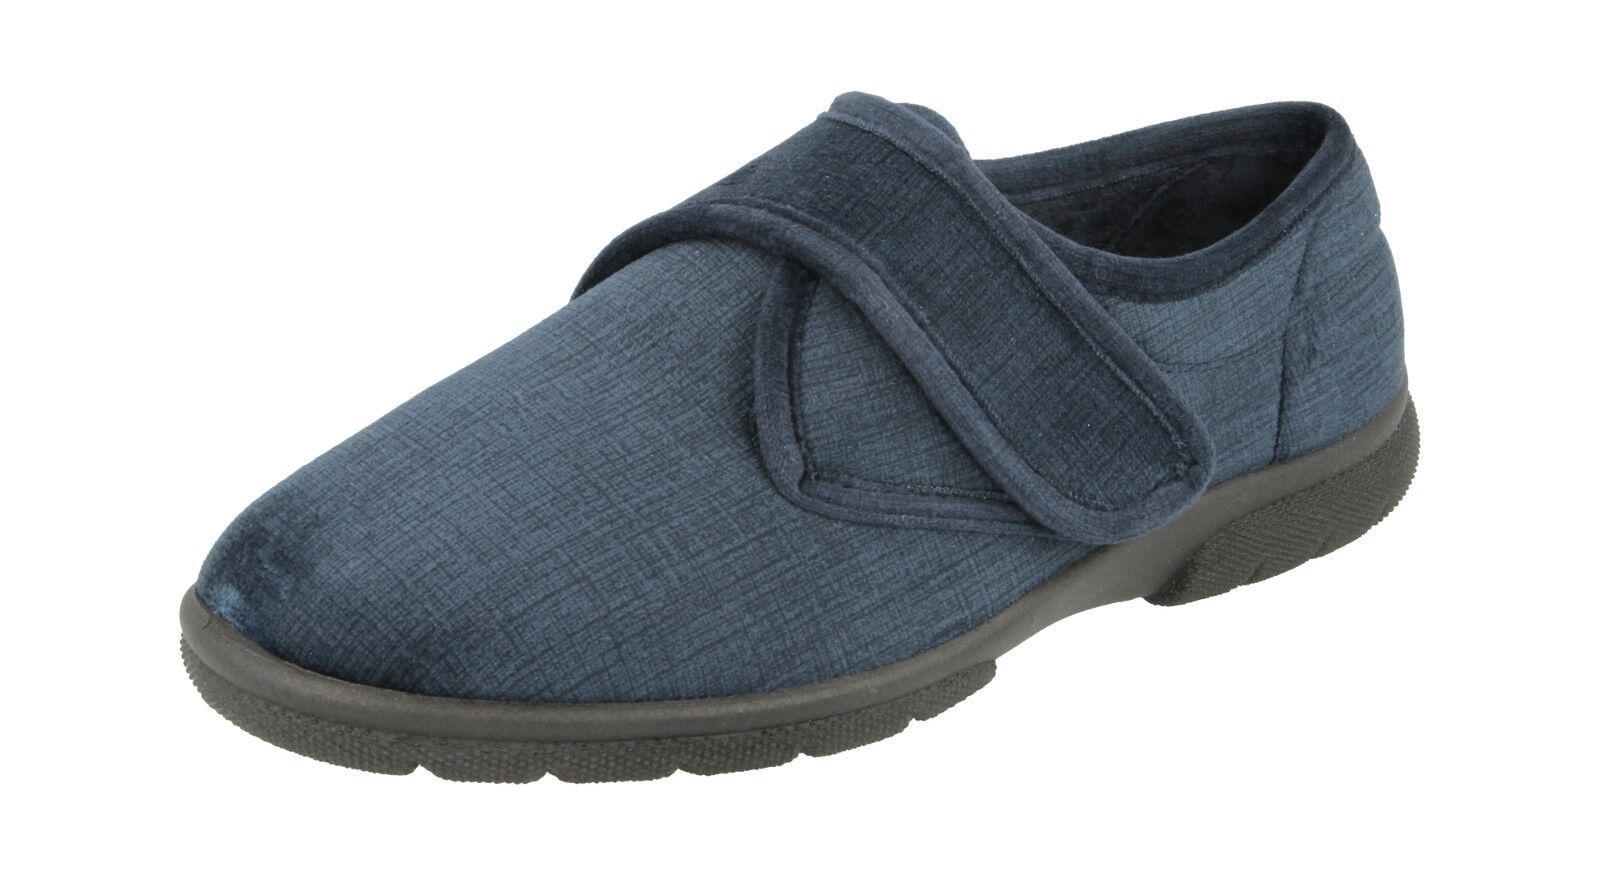 DB  Hallam MENS WIDE DIABETIC ORTHOPAEDIC EASY CLOSE WIDE MENS FIT SLIPPERS SHOES 24694c